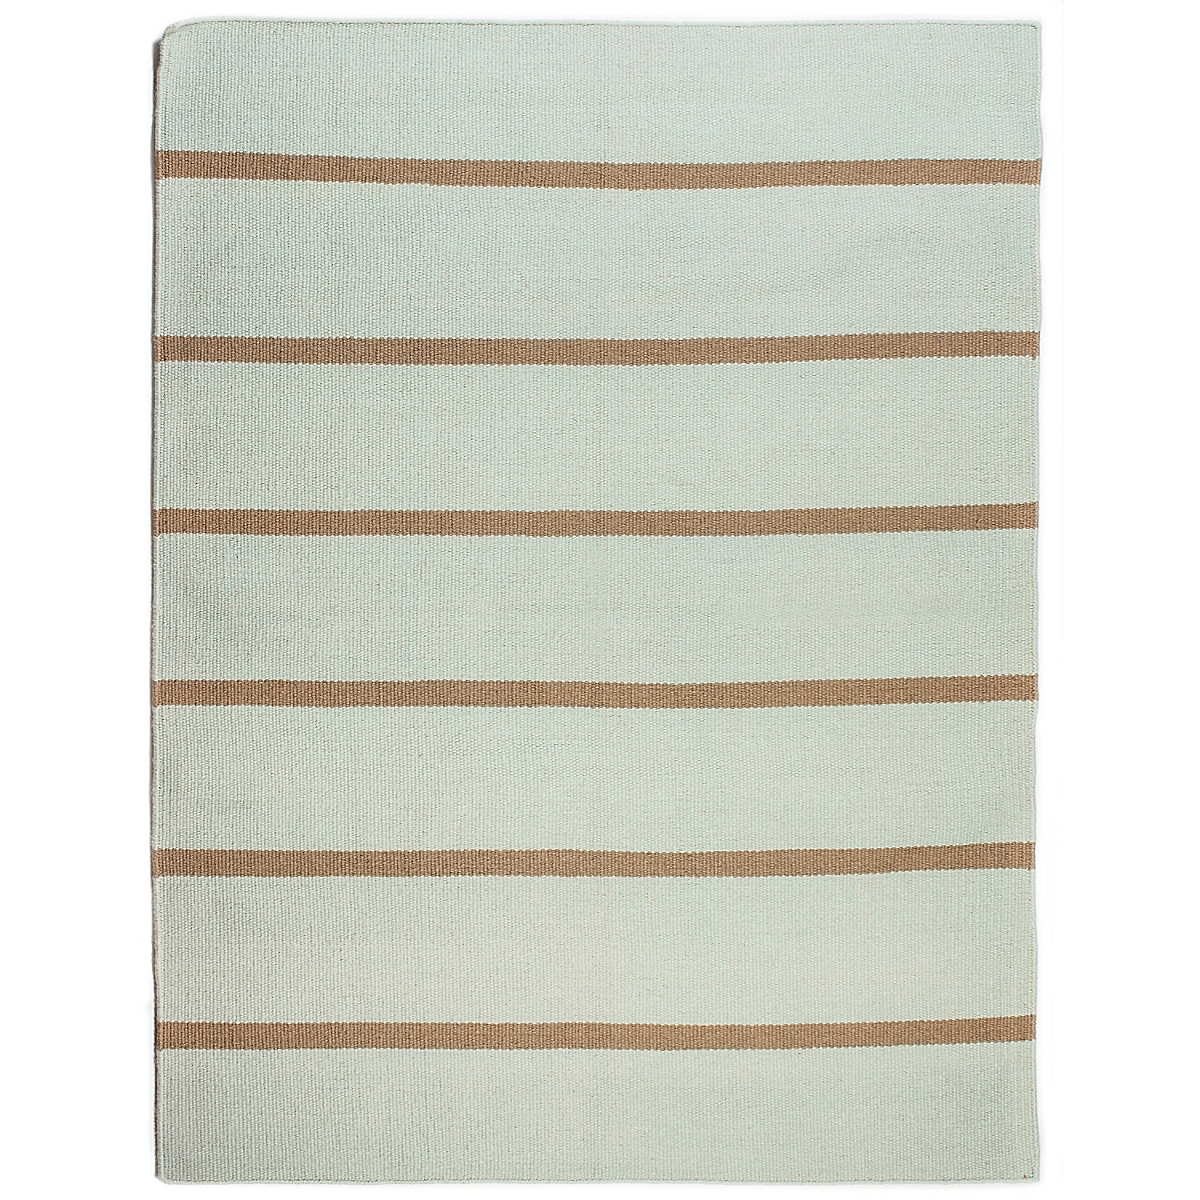 Bodie Island Wool Berber Striped Rug